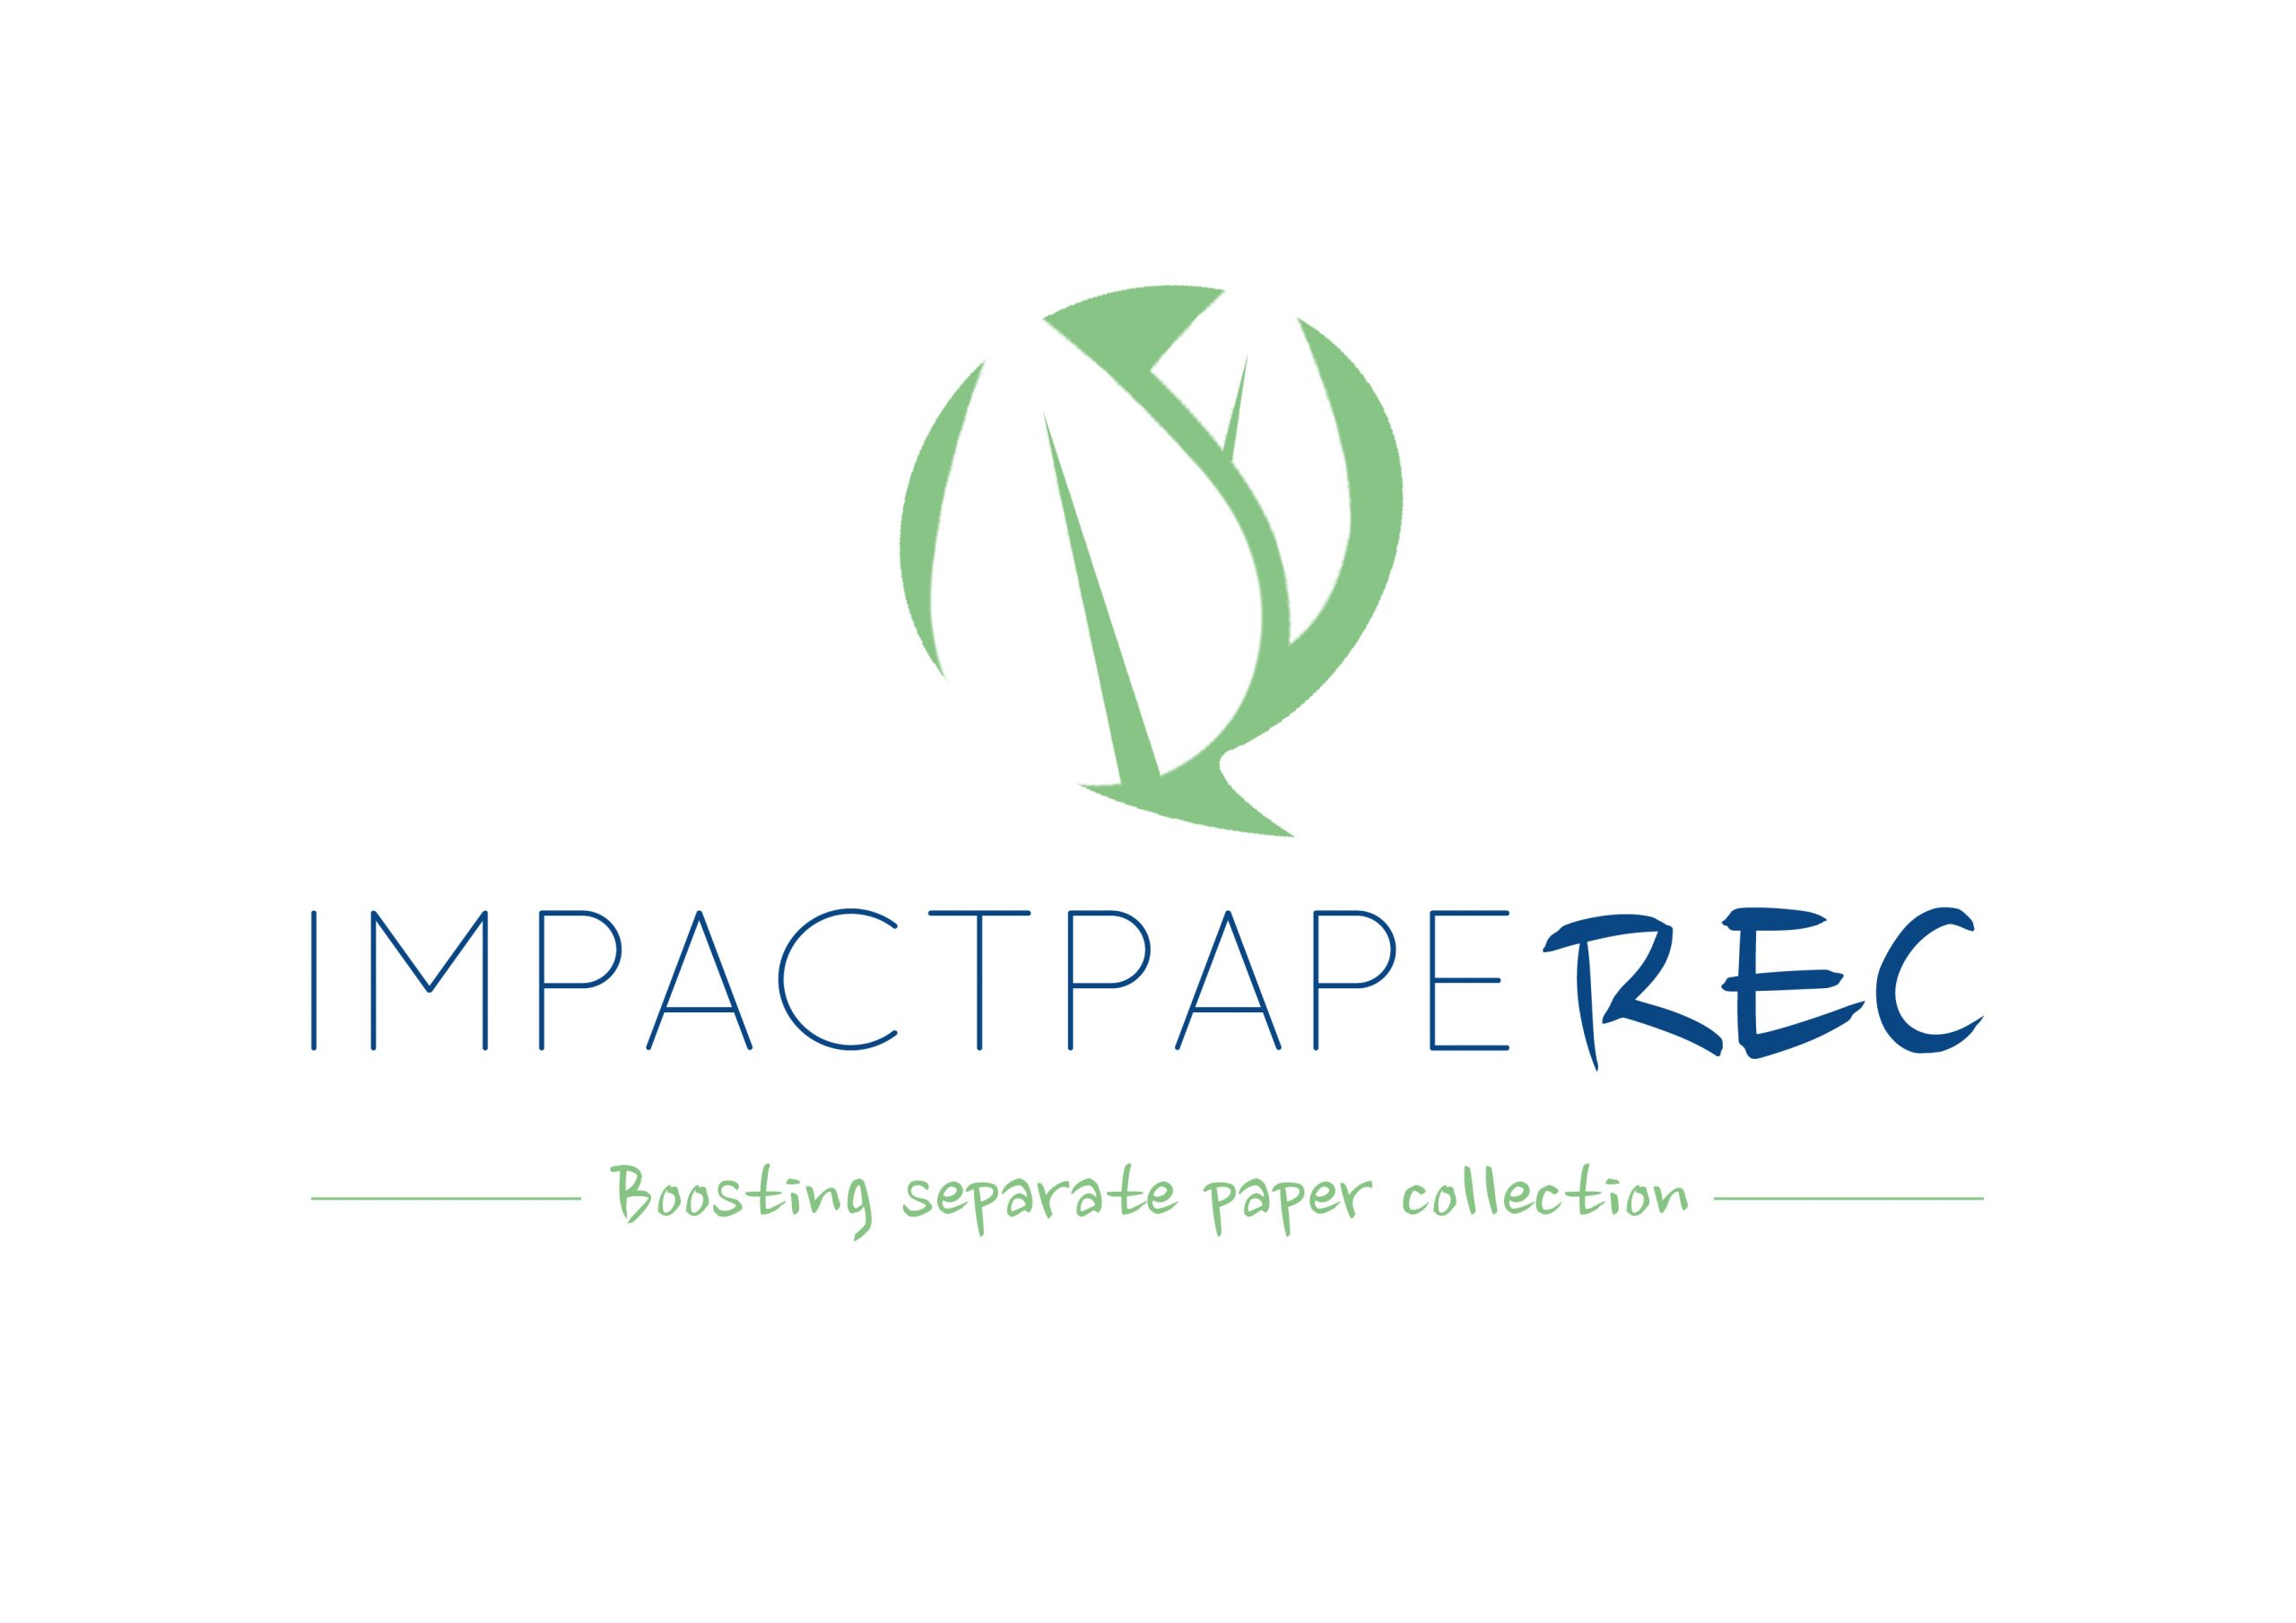 IMPACTPapeRec project sends strong Circular Economy message on separate collection of paper at final conference